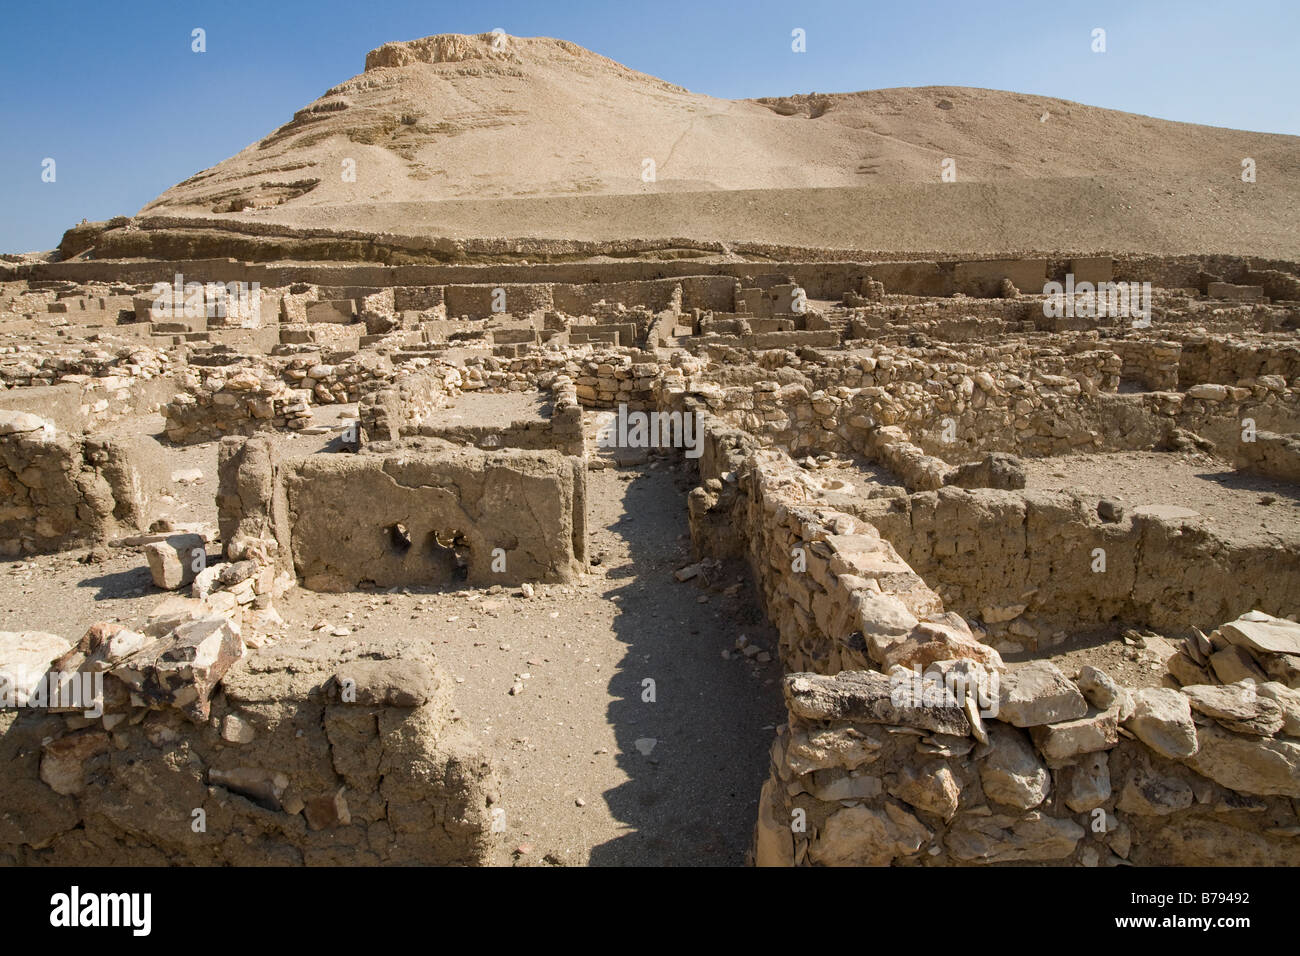 Deir el-Medina: The Workers' Village on the West Bank Luxor, Egypt - Stock Image